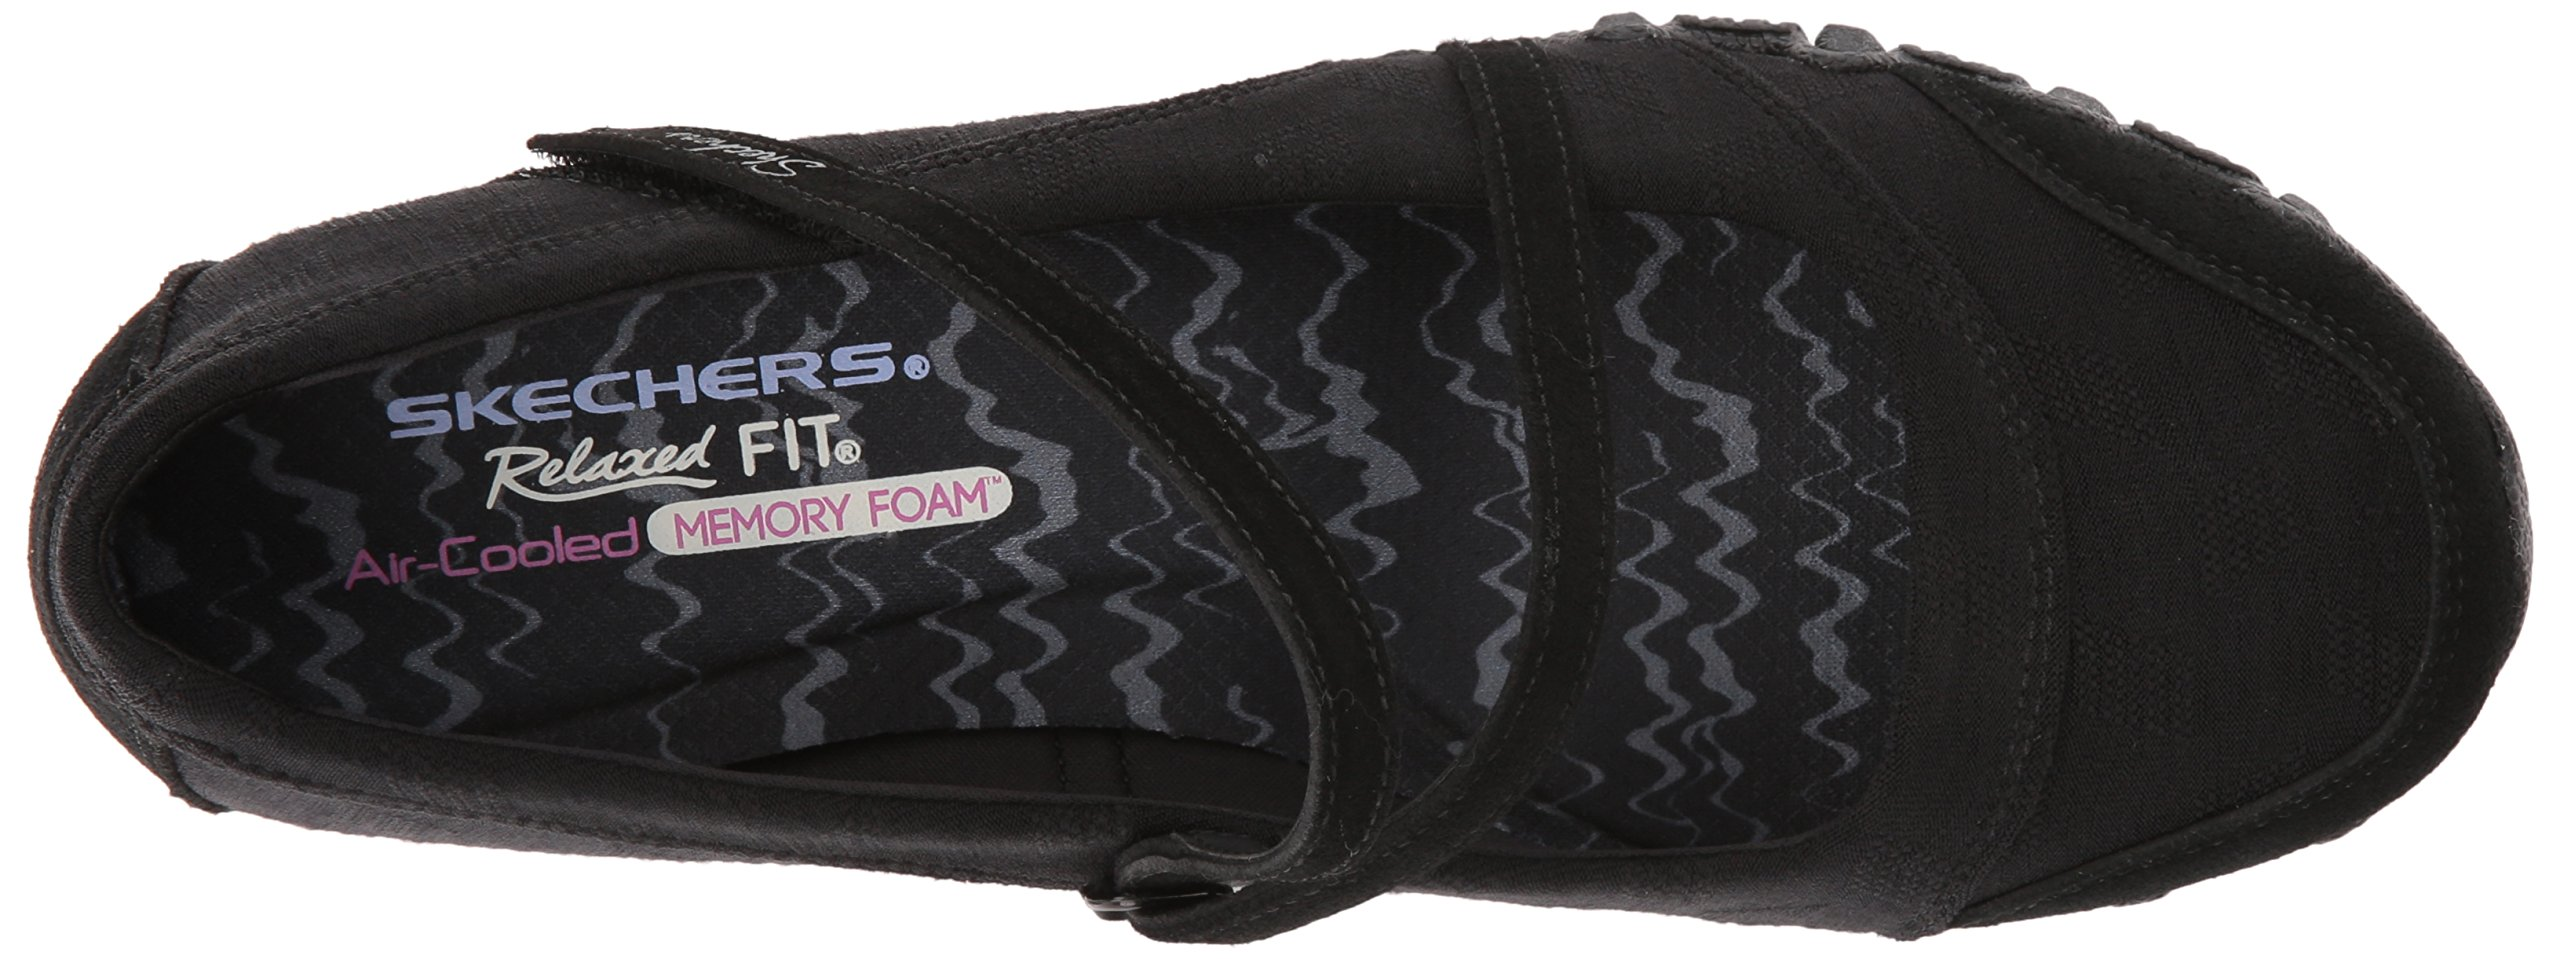 Skechers Women's Bikers -Fiesta Mary Jane Flat,7 M US,Black by Skechers (Image #8)